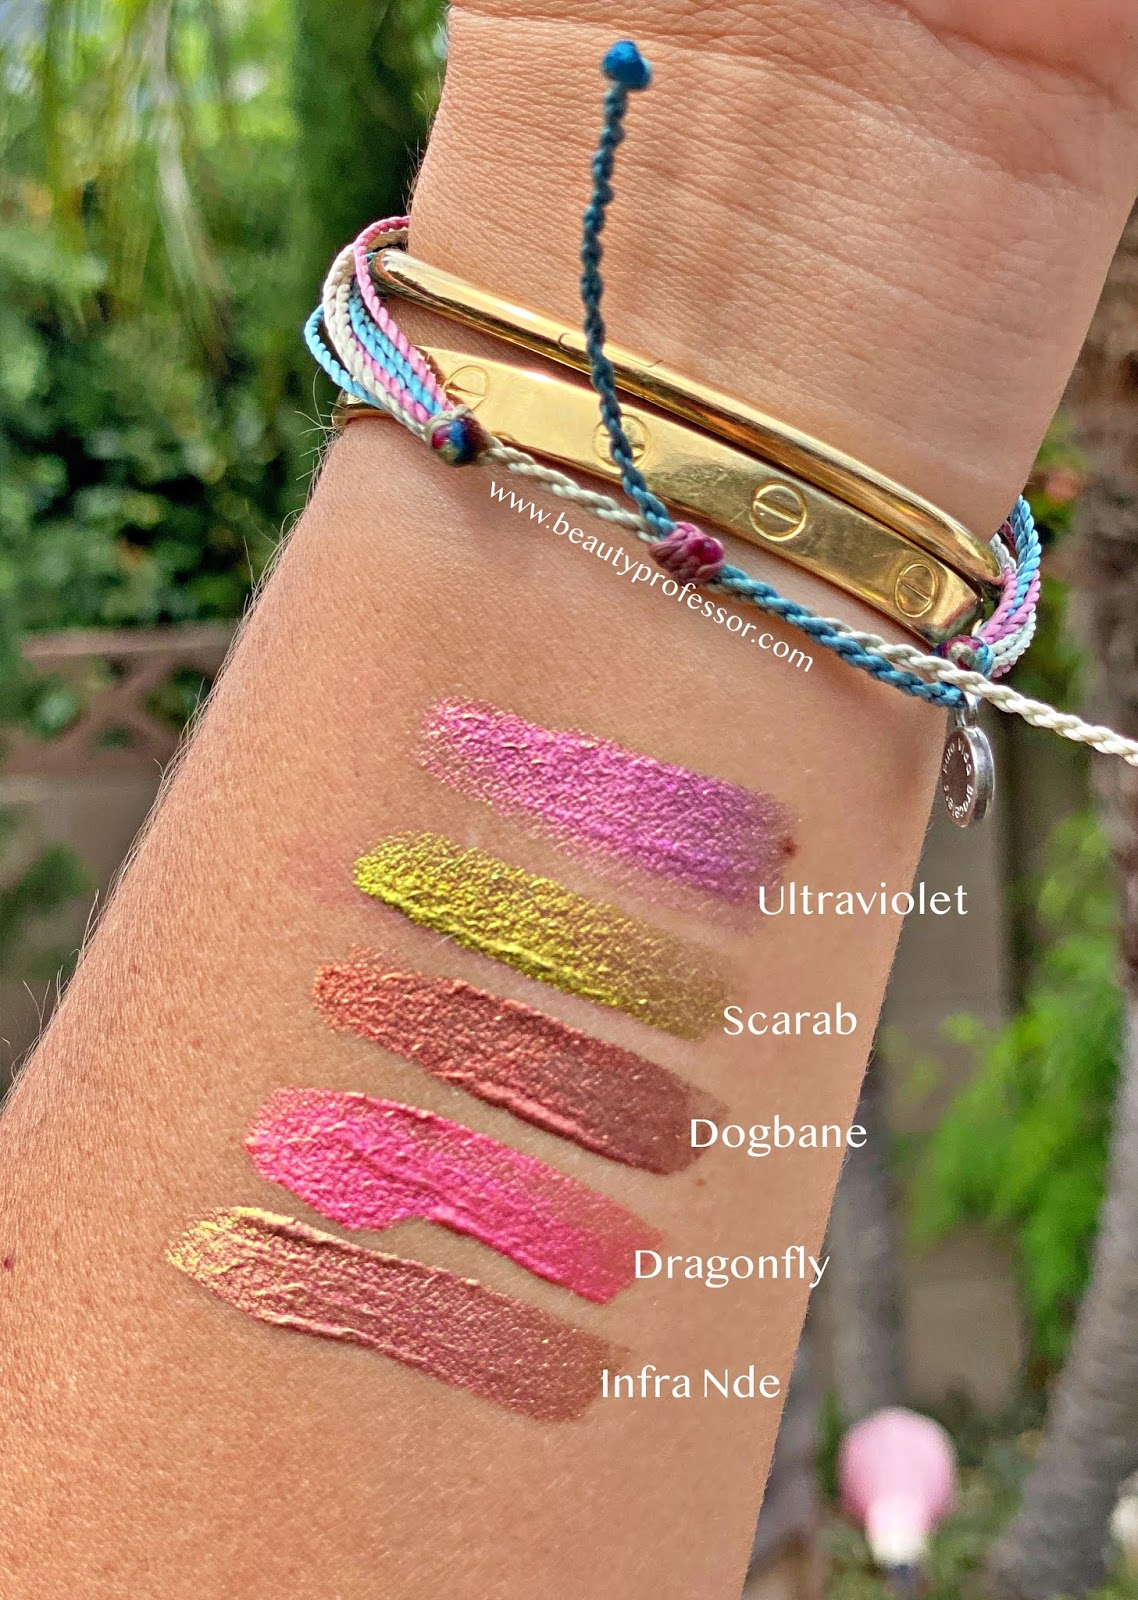 Natasha Denona Chromium Multichrome Liquid Eyeshadow swatches